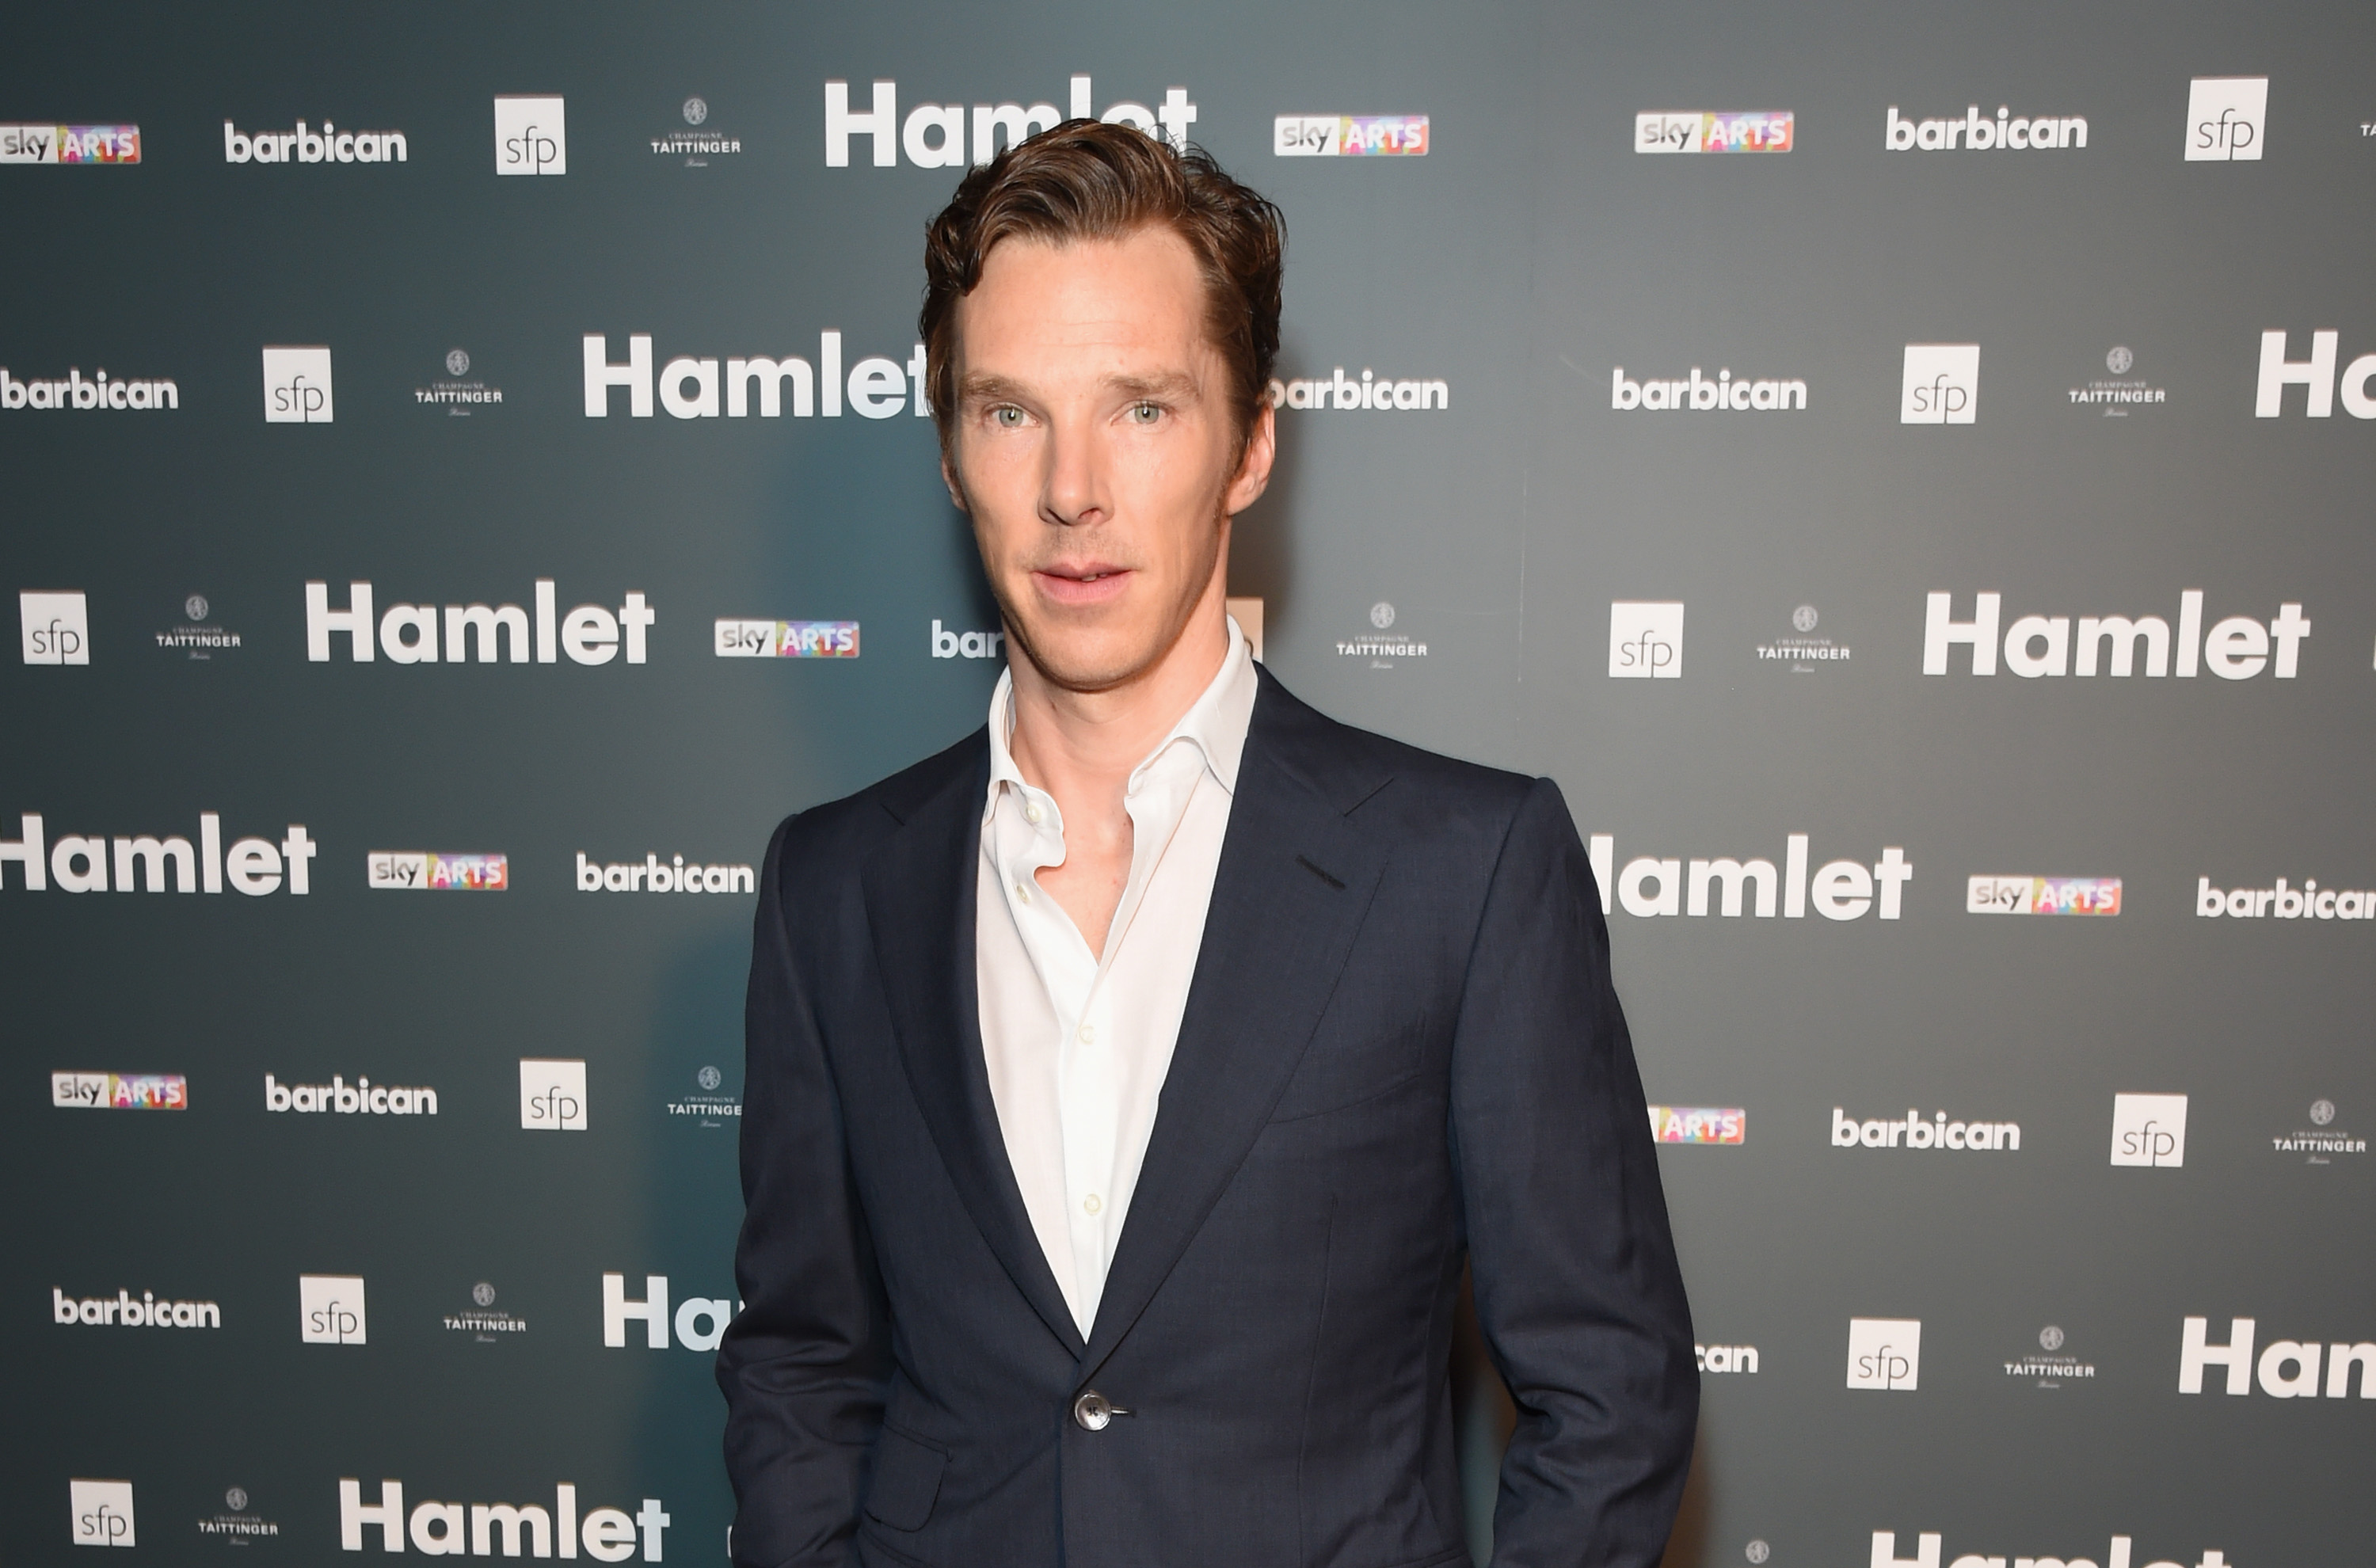 Benedict Cumberbatch on Aug. 25, 2015 in London.